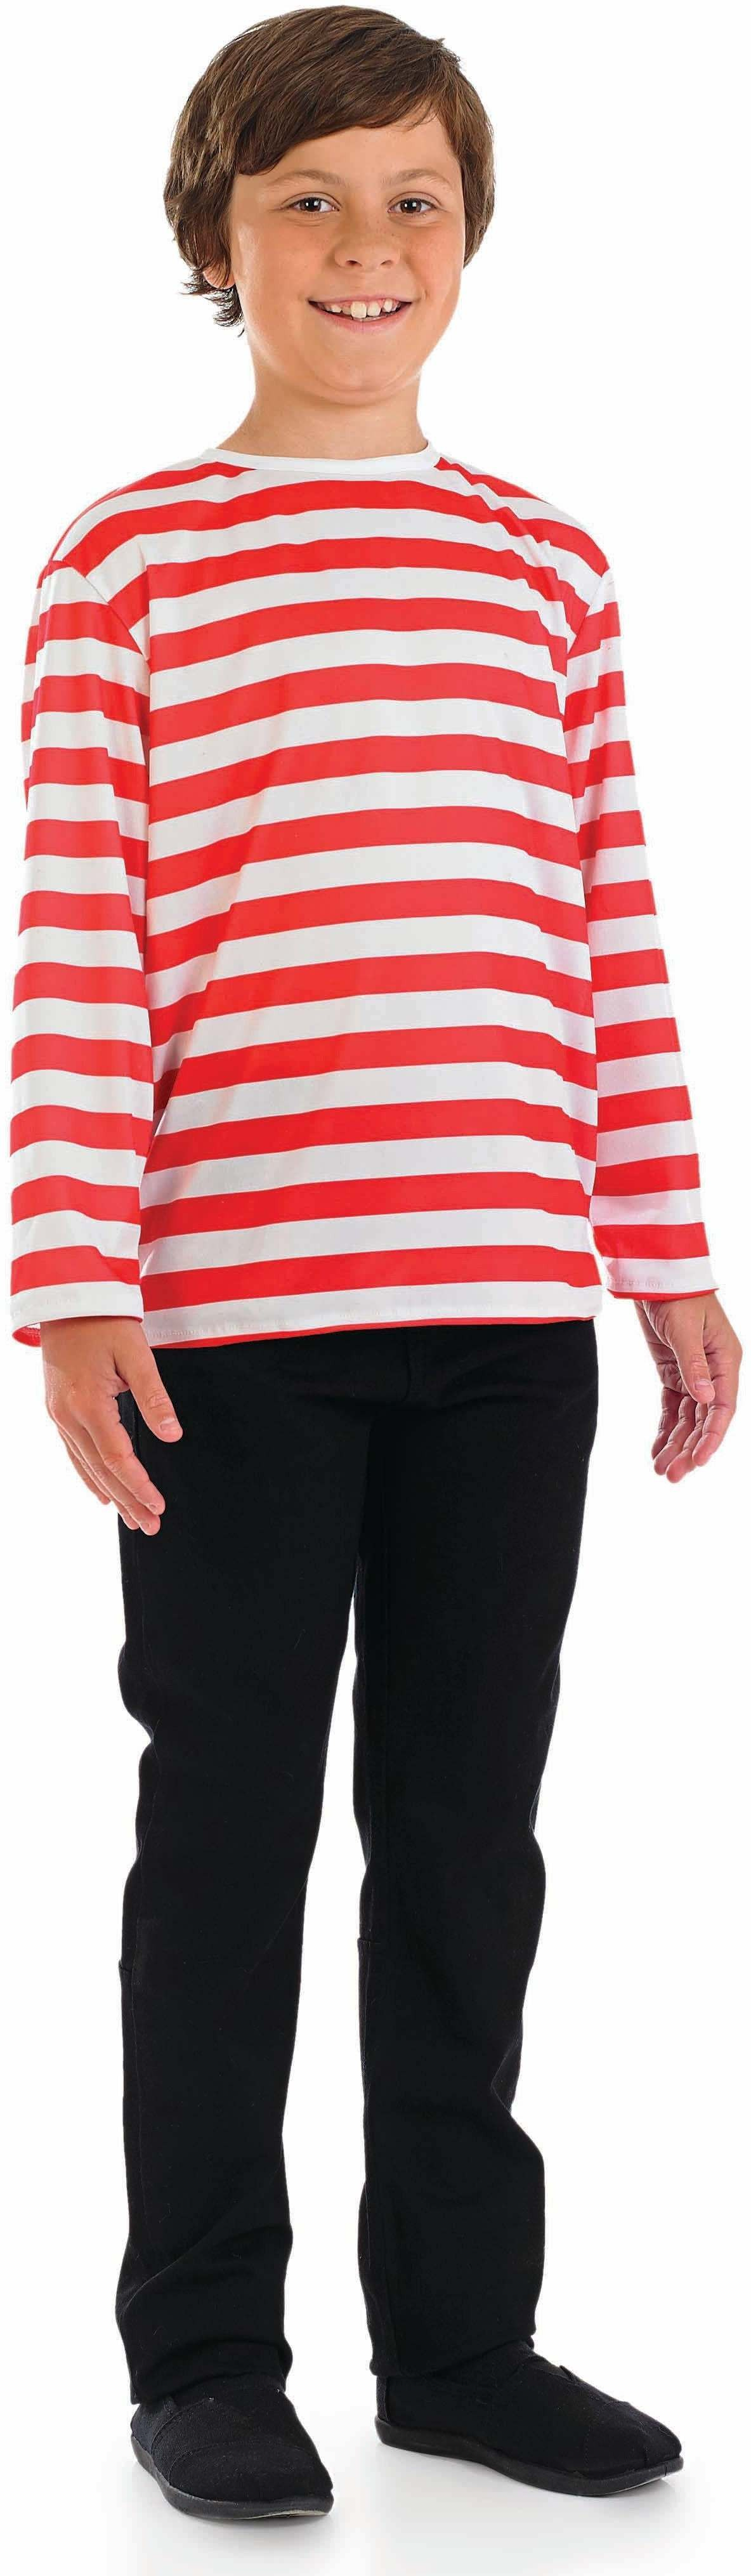 Boys Red & White Stripe Jumper - (Red,White)